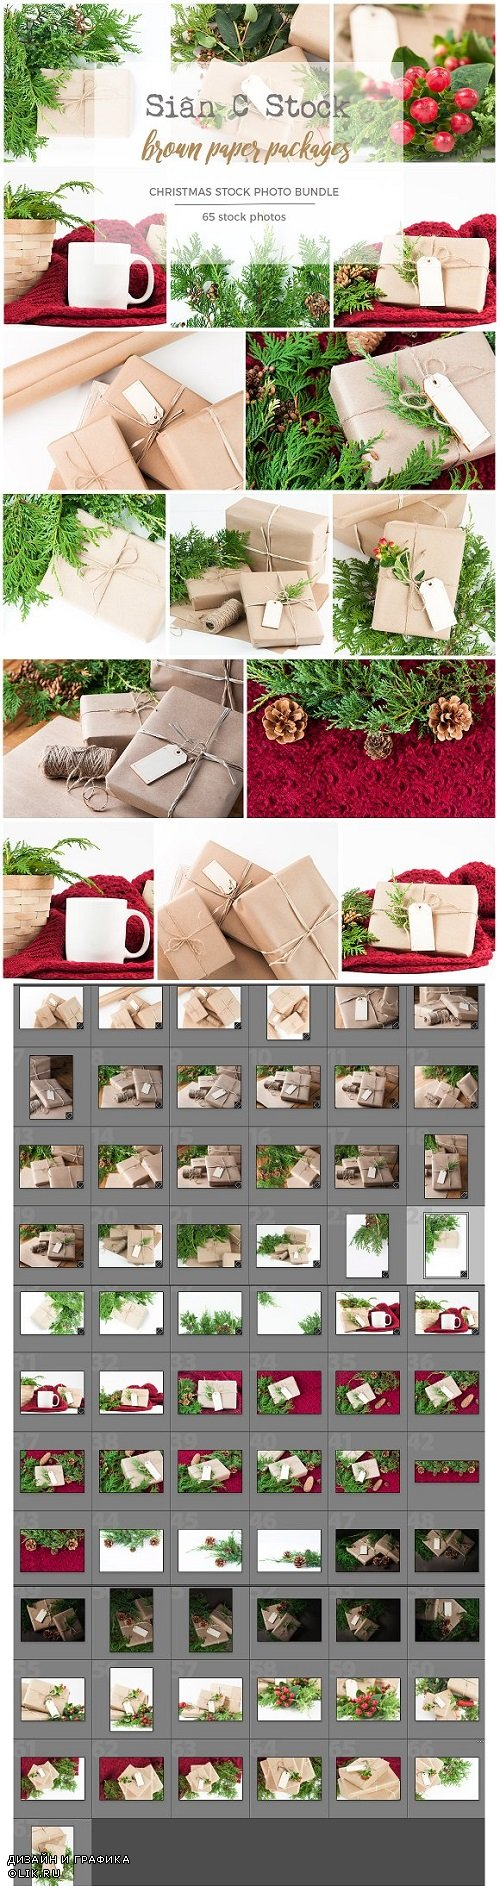 Brown Paper Packages Photo Bundle 1989463